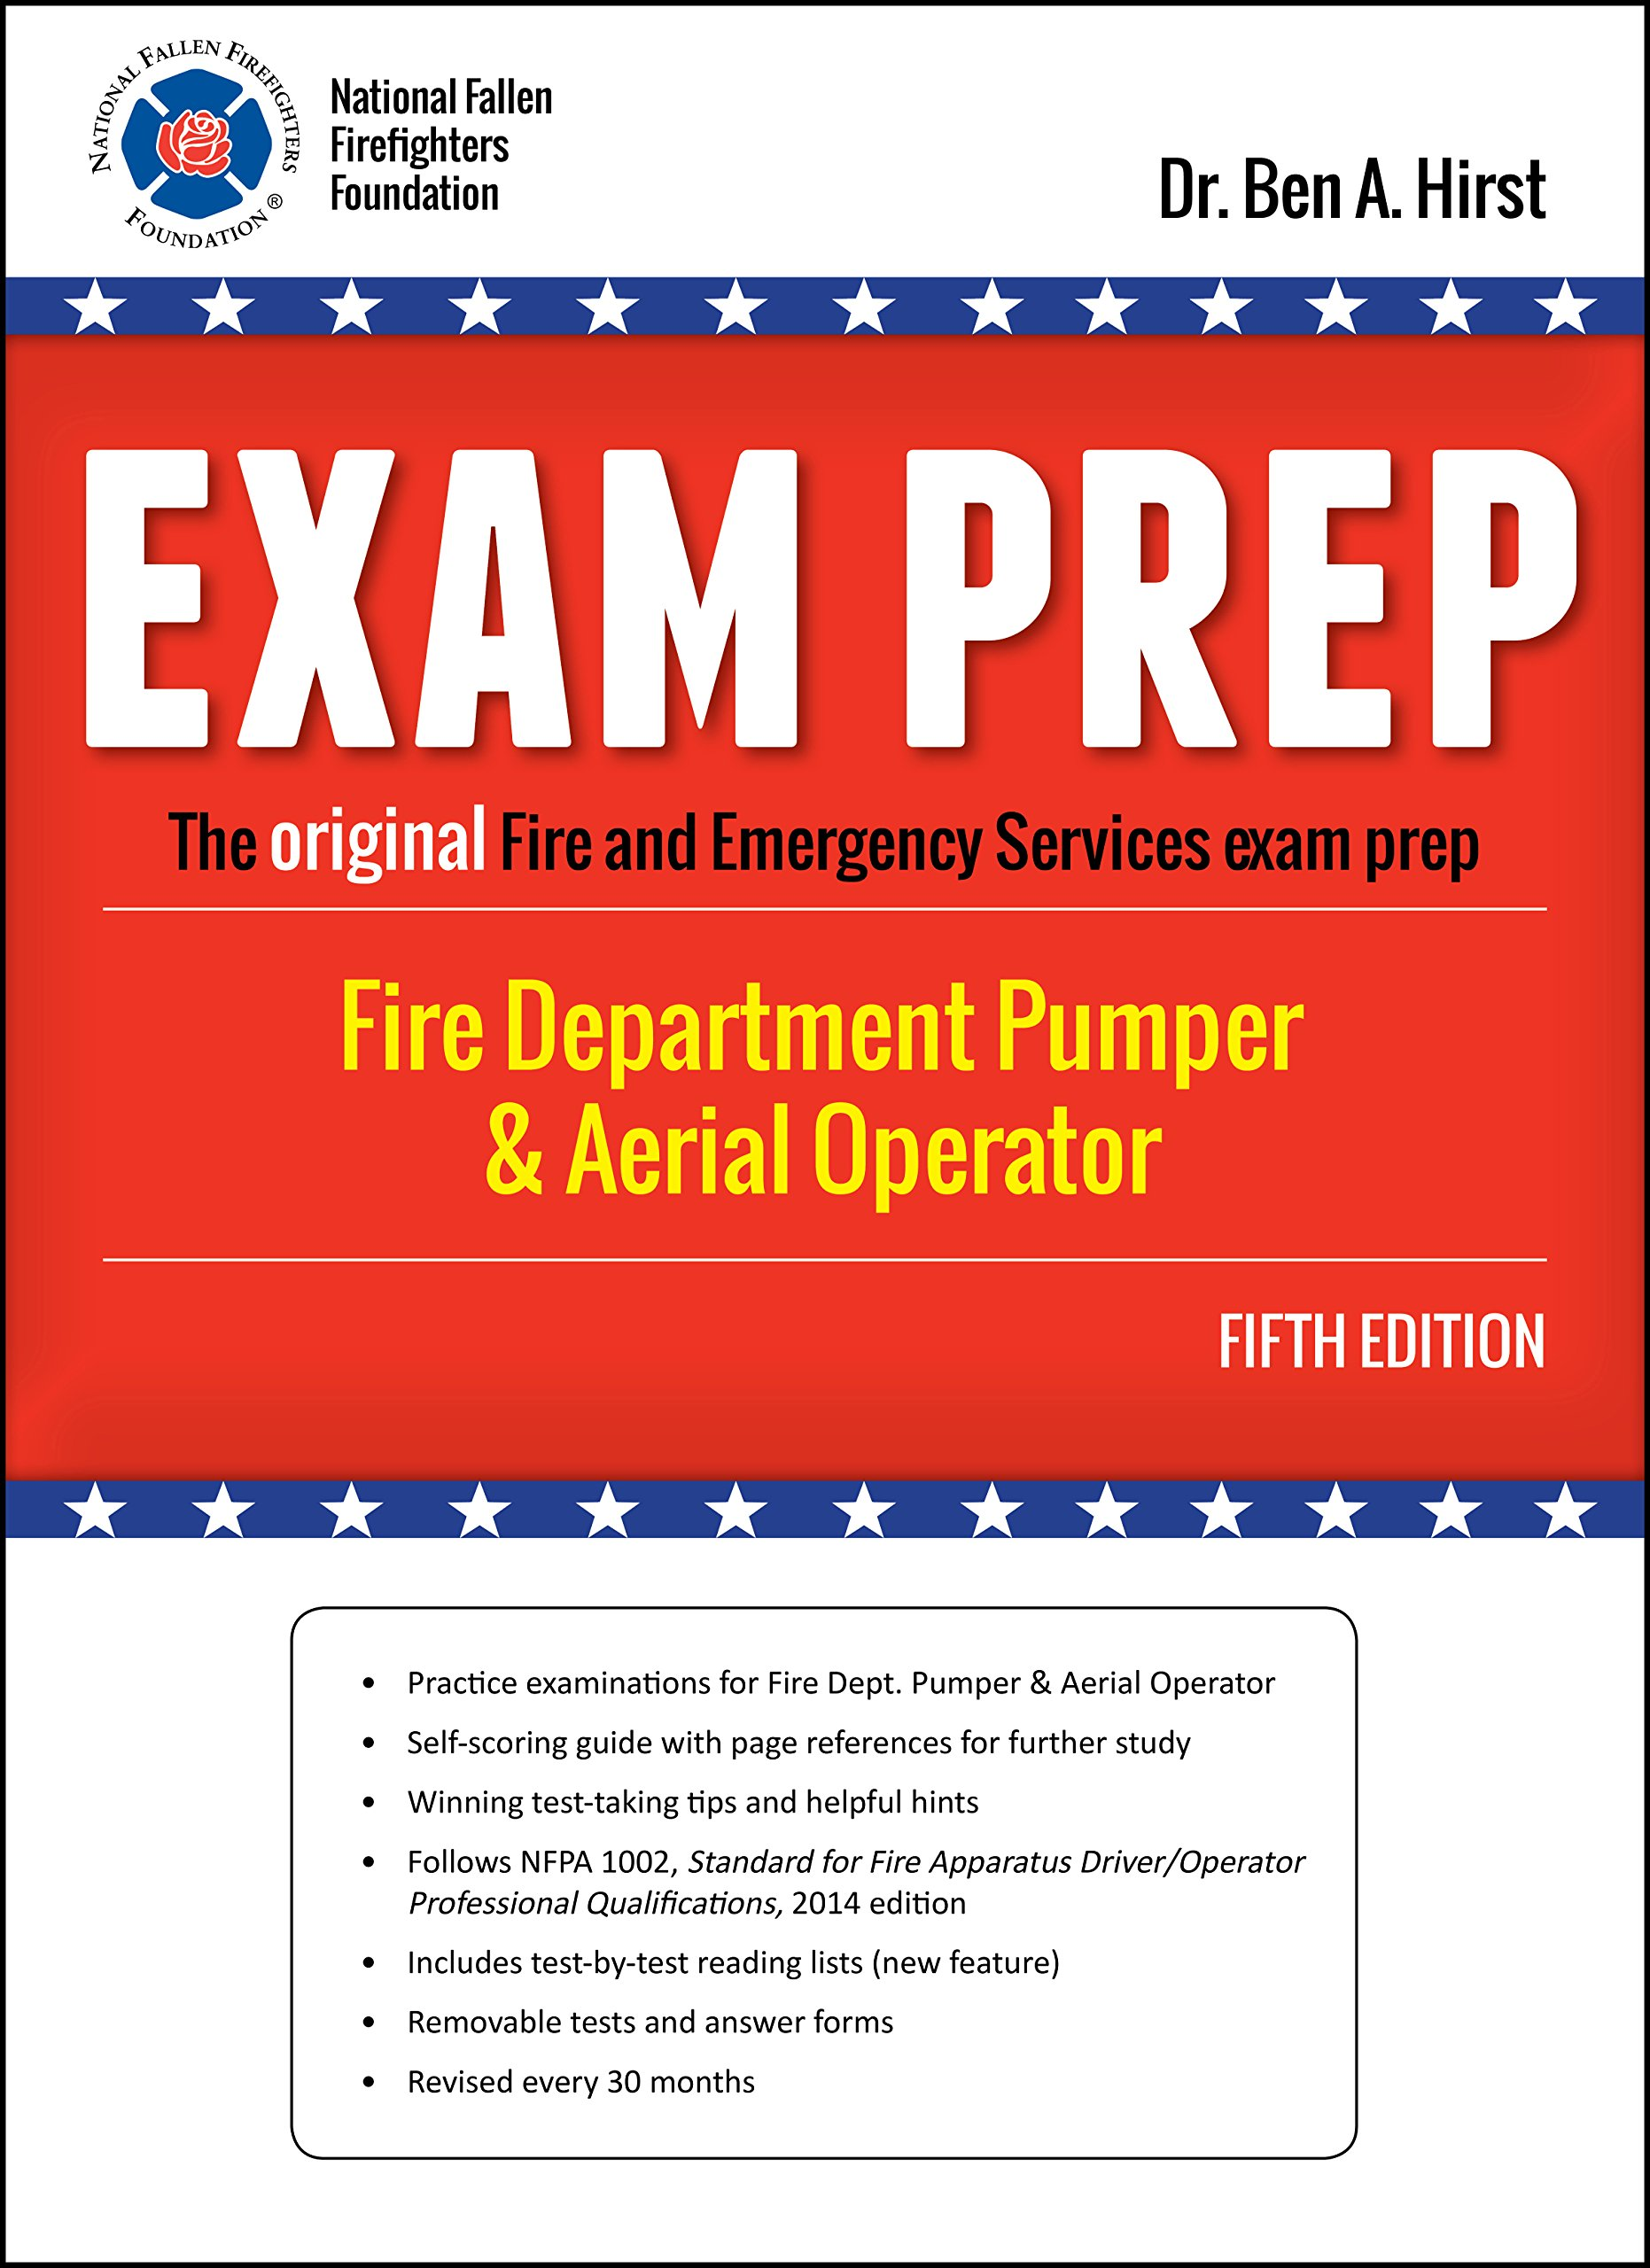 FIRE DEPARTMENT PUMPER & AERIAL OPERATOR: Performance Training Systems Dr.  Ben A. Hirst: 9781495117541: Amazon.com: Books